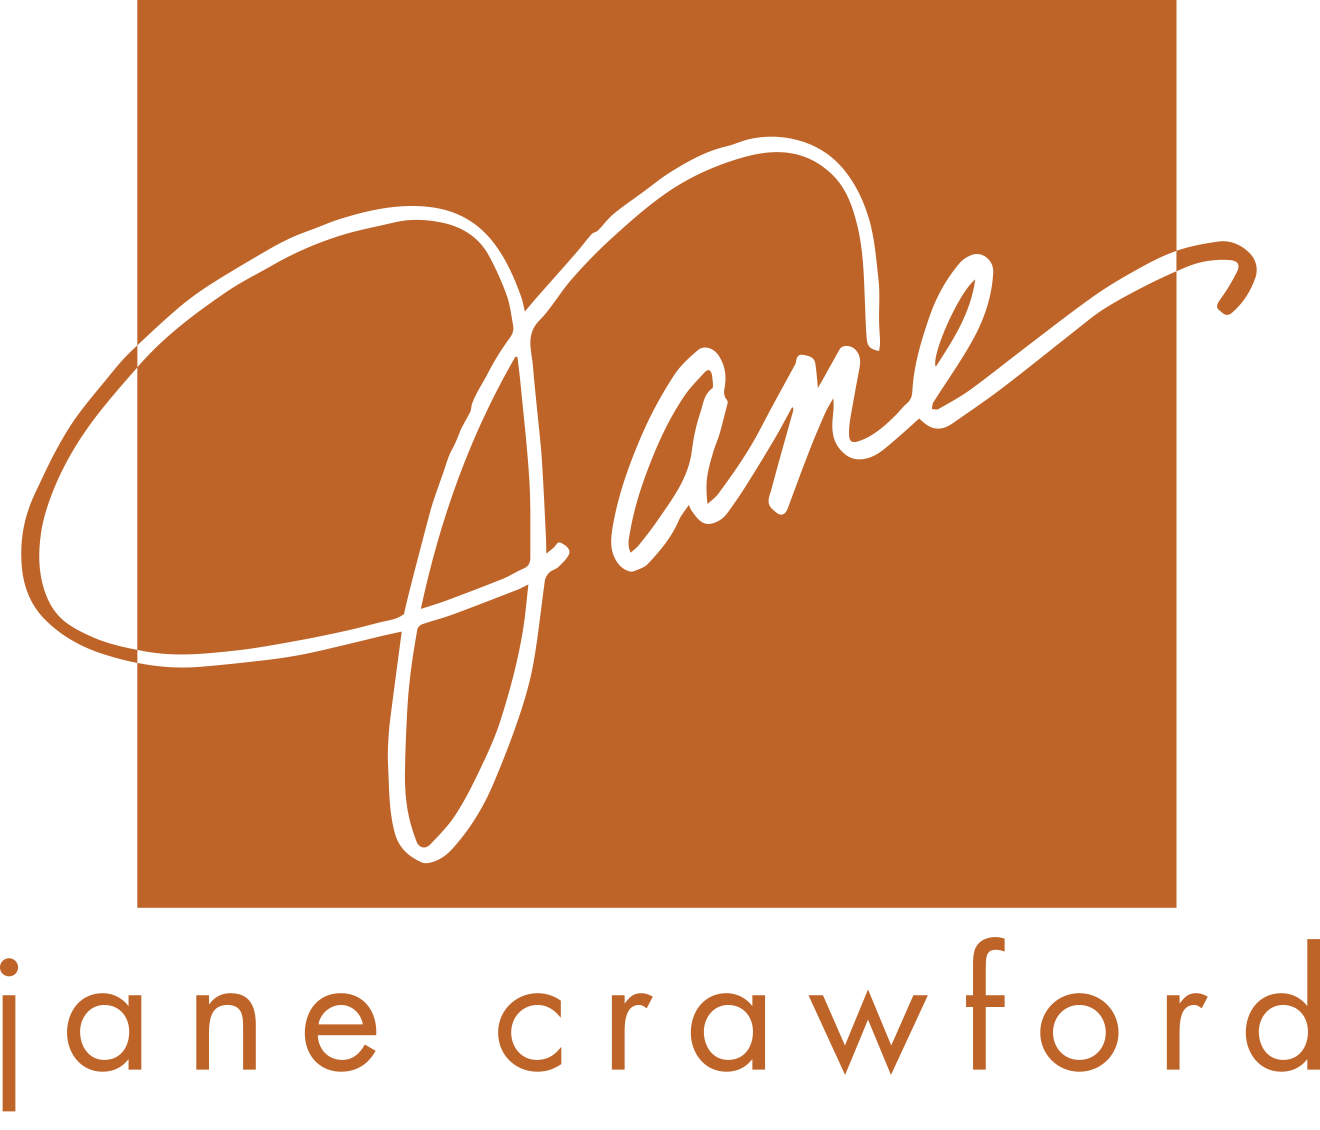 Jane Crawford